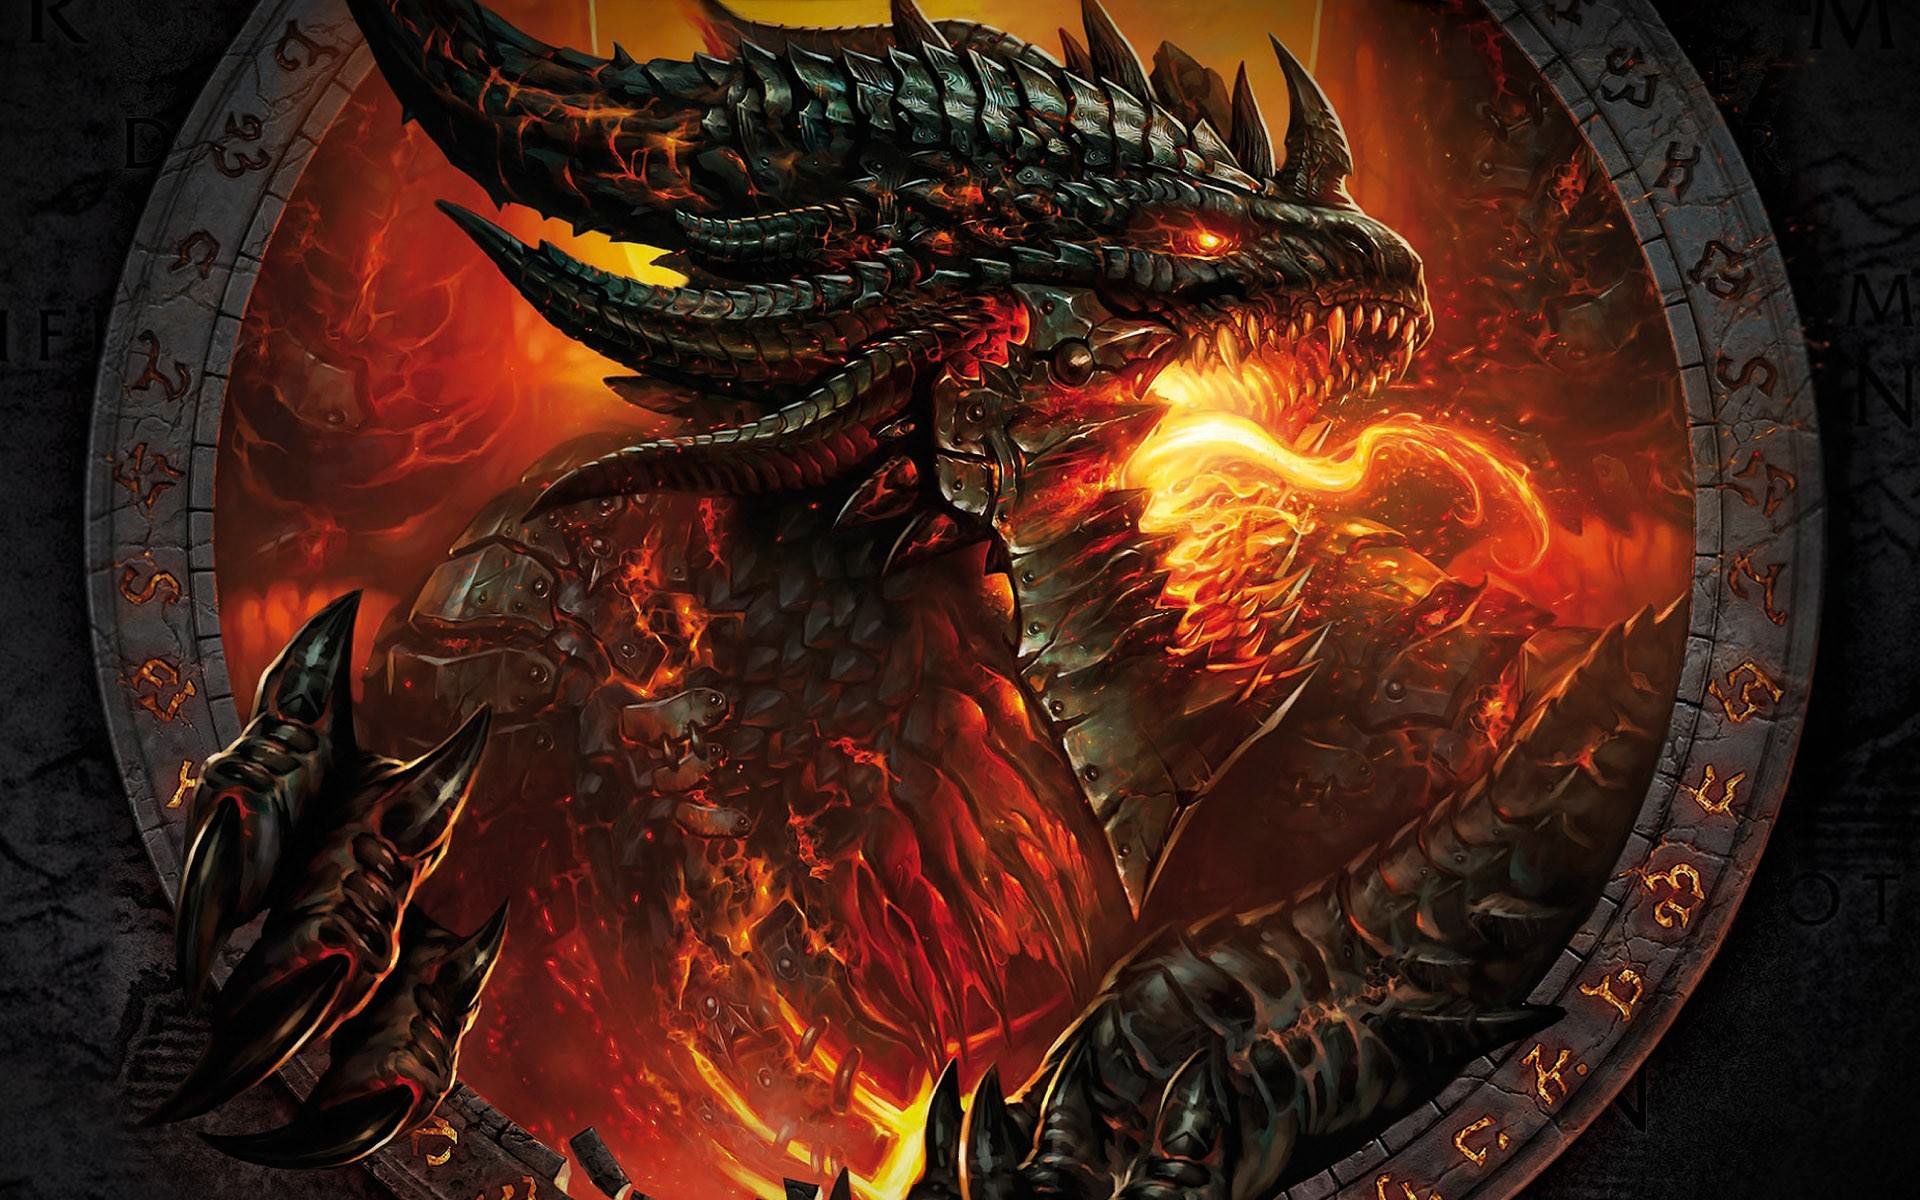 Fire Dragon Wallpaper Android